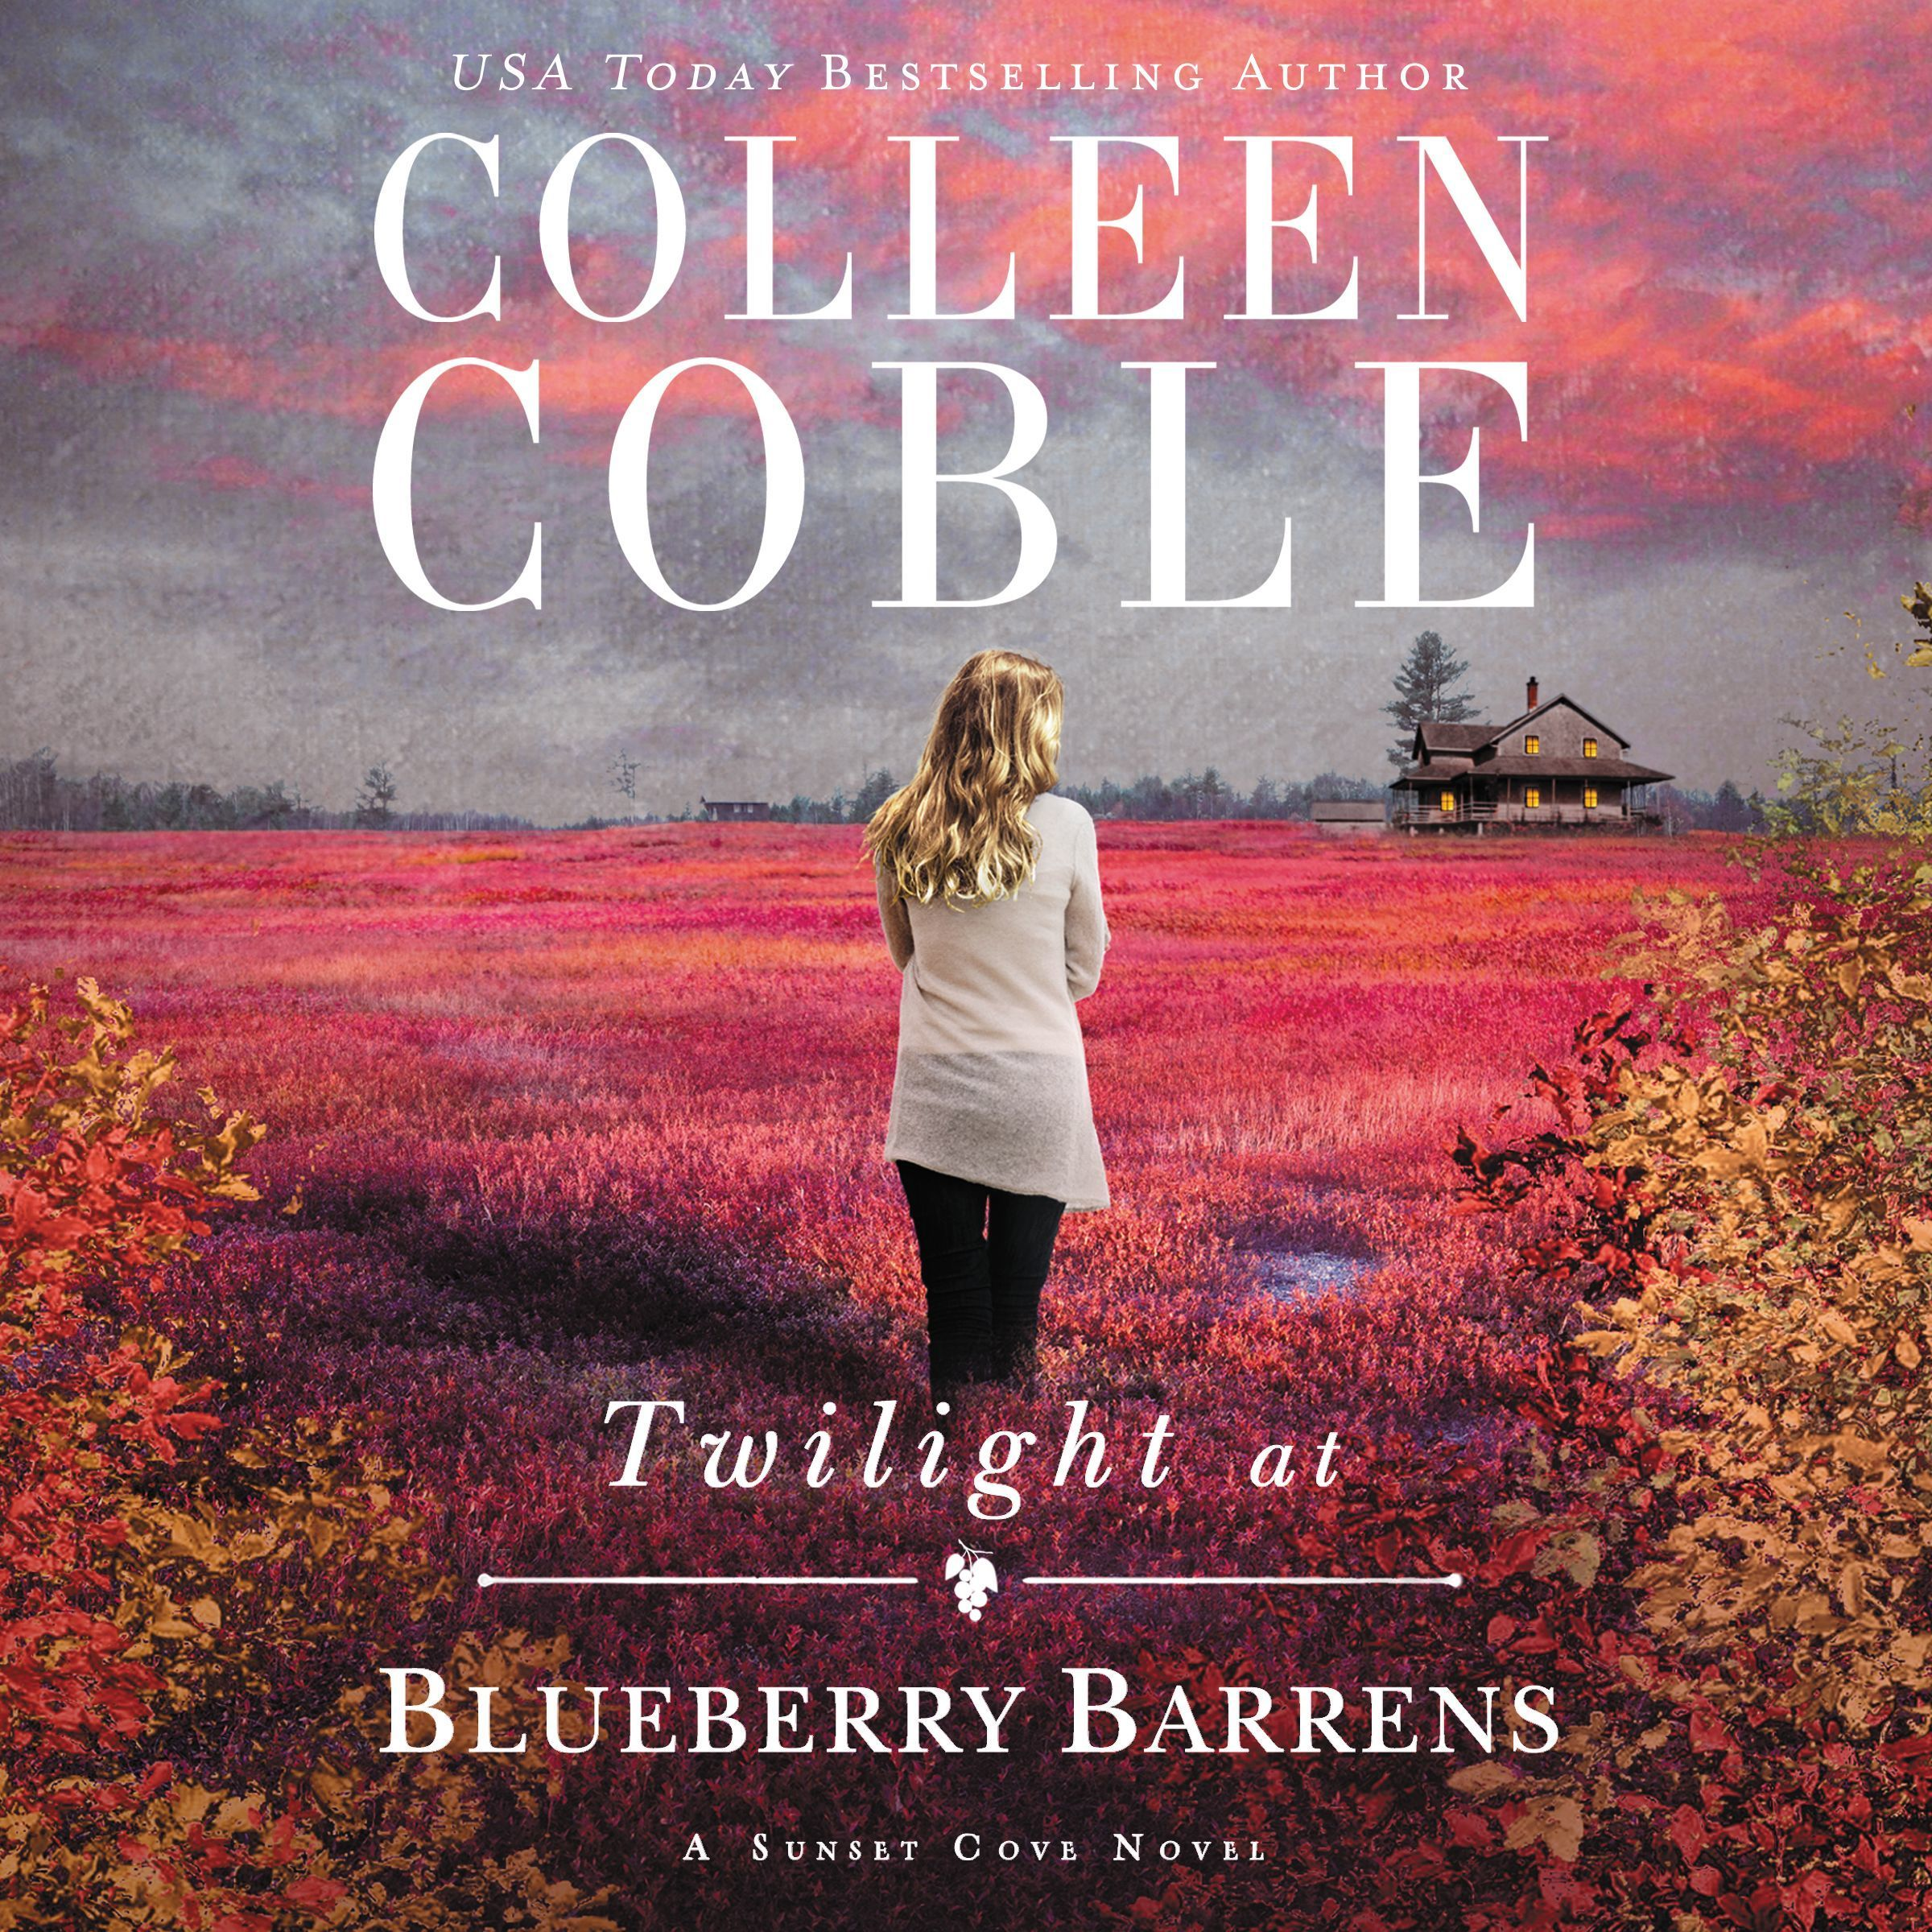 Printable Twilight at Blueberry Barrens Audiobook Cover Art